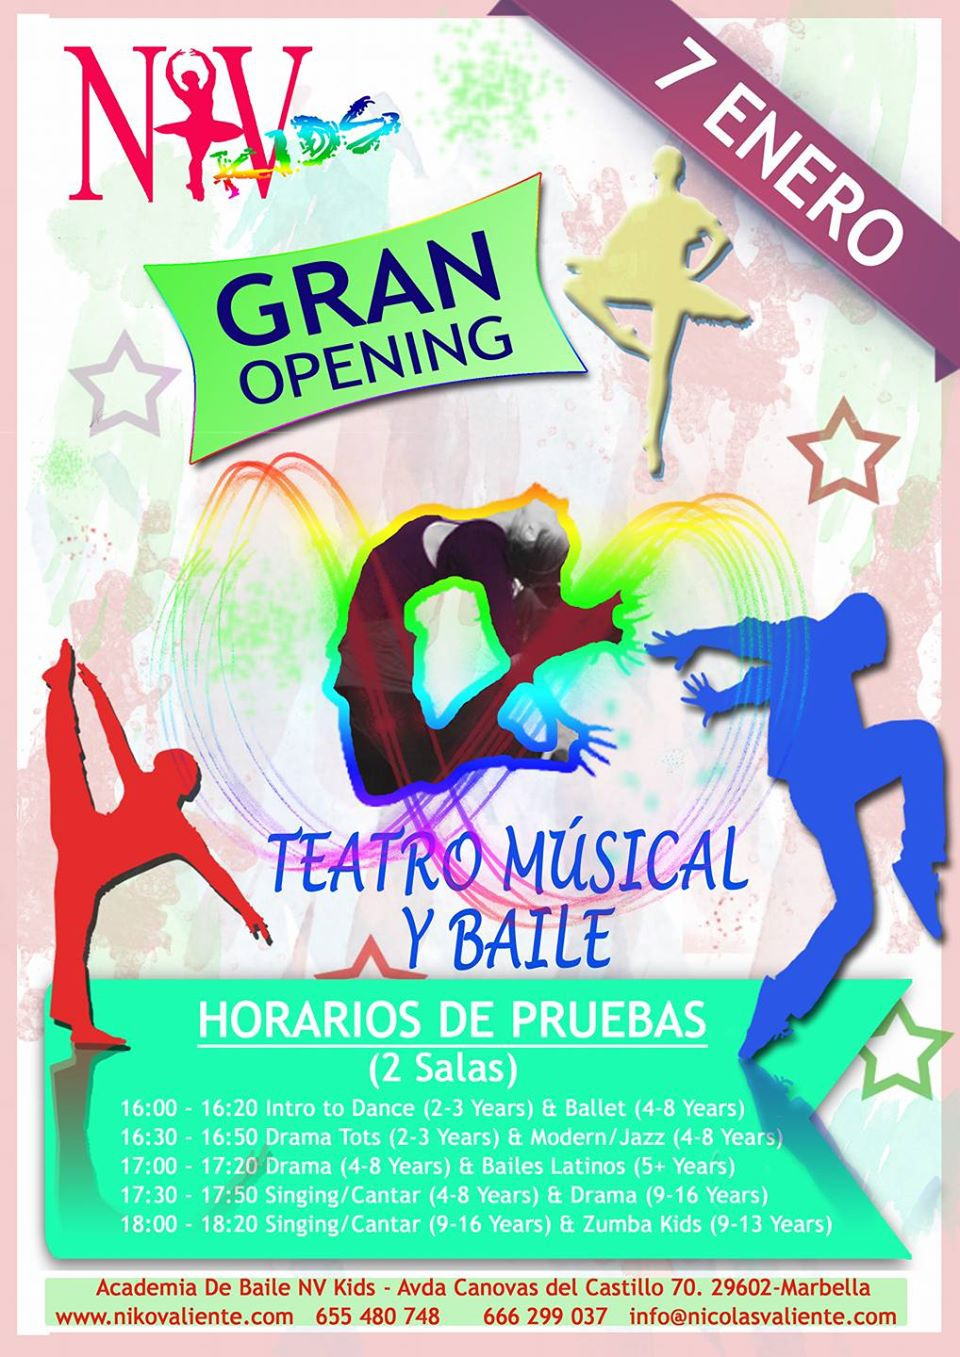 GRAND OPENING PARTY NV KIDS, musical theatre & dance school, Marbella